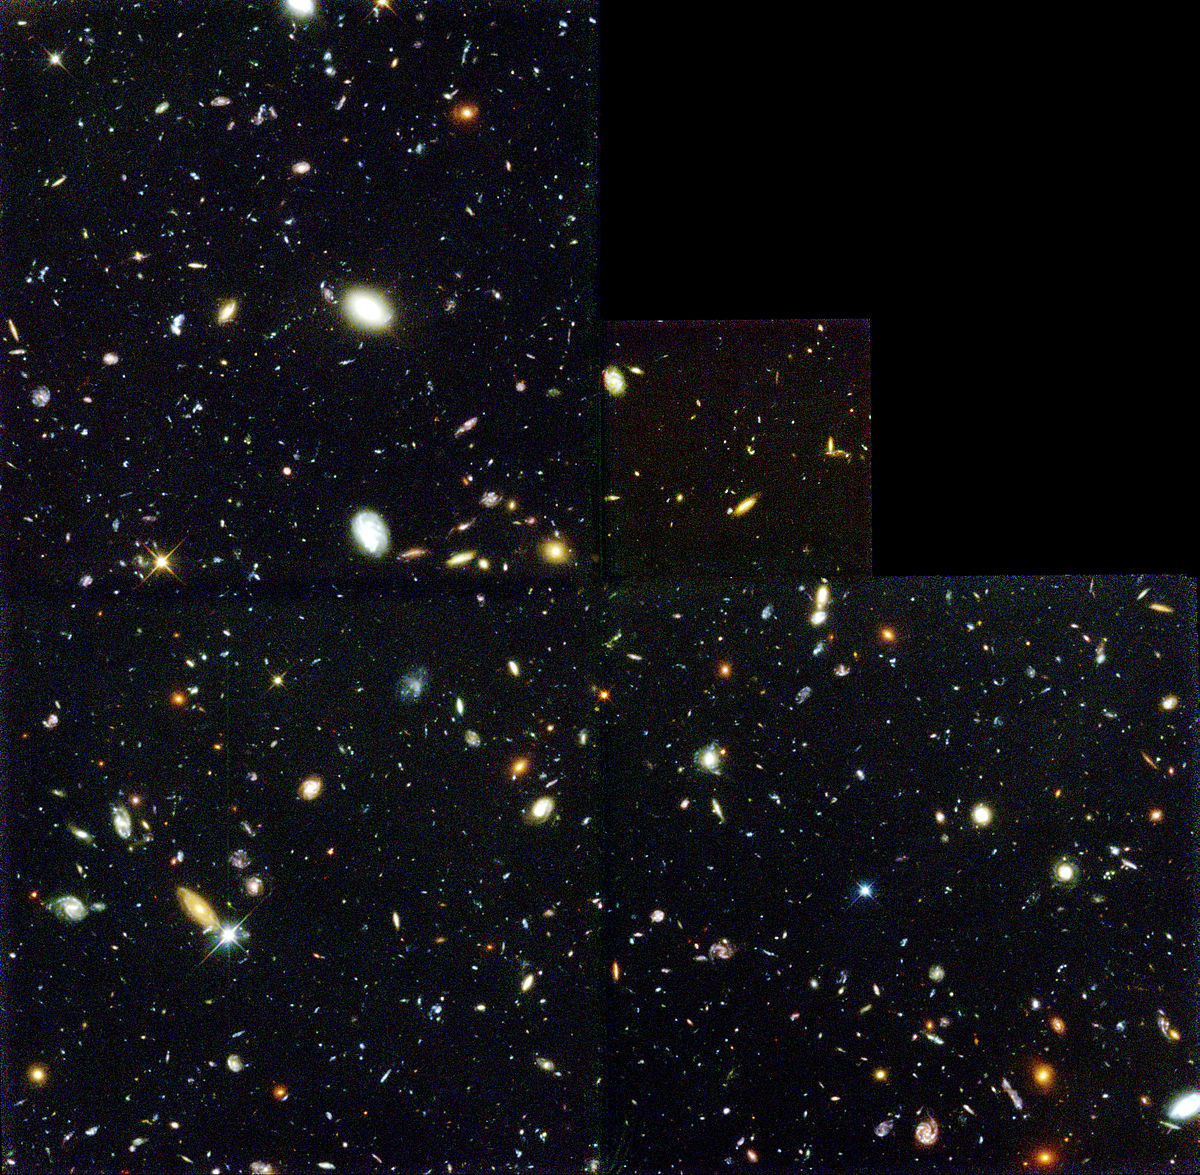 Image taken by the Hubble Space telescope know as the Hubble Deep Field image. Shows countless galaxies as fuzzy dots over an expanse of darkness.